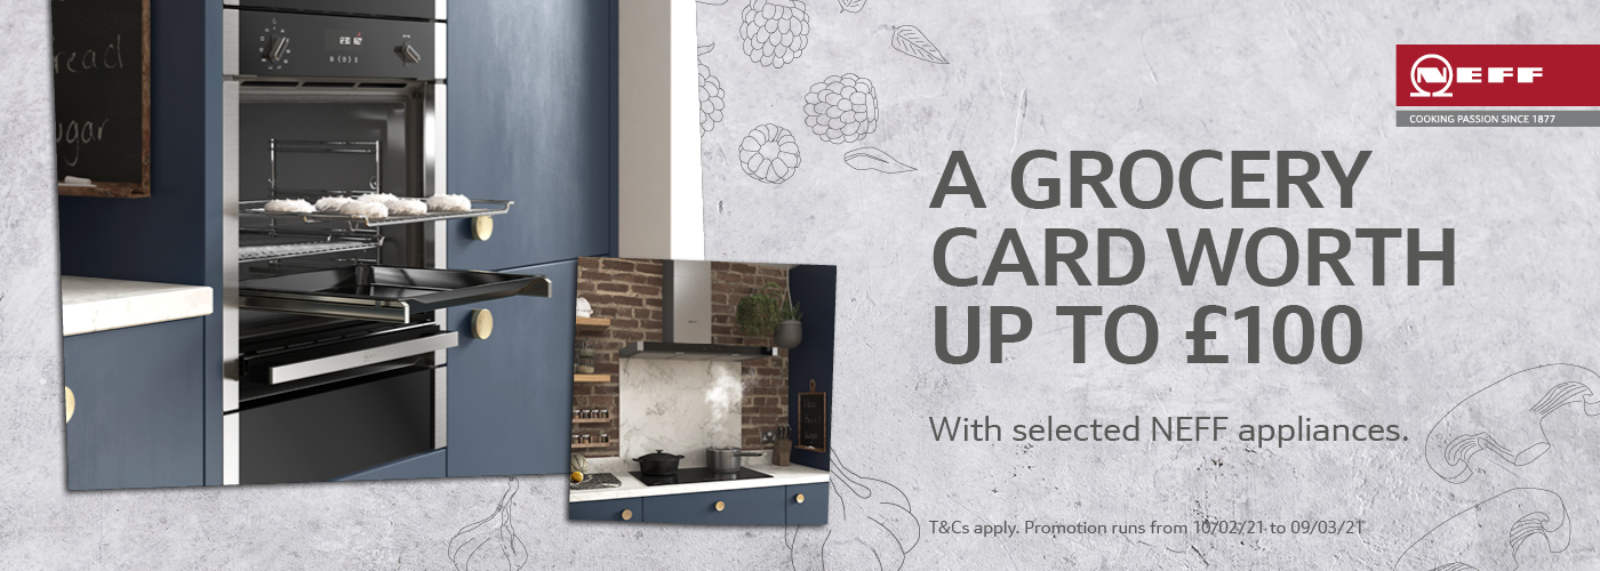 Neff Grocery Card Promotion 2021